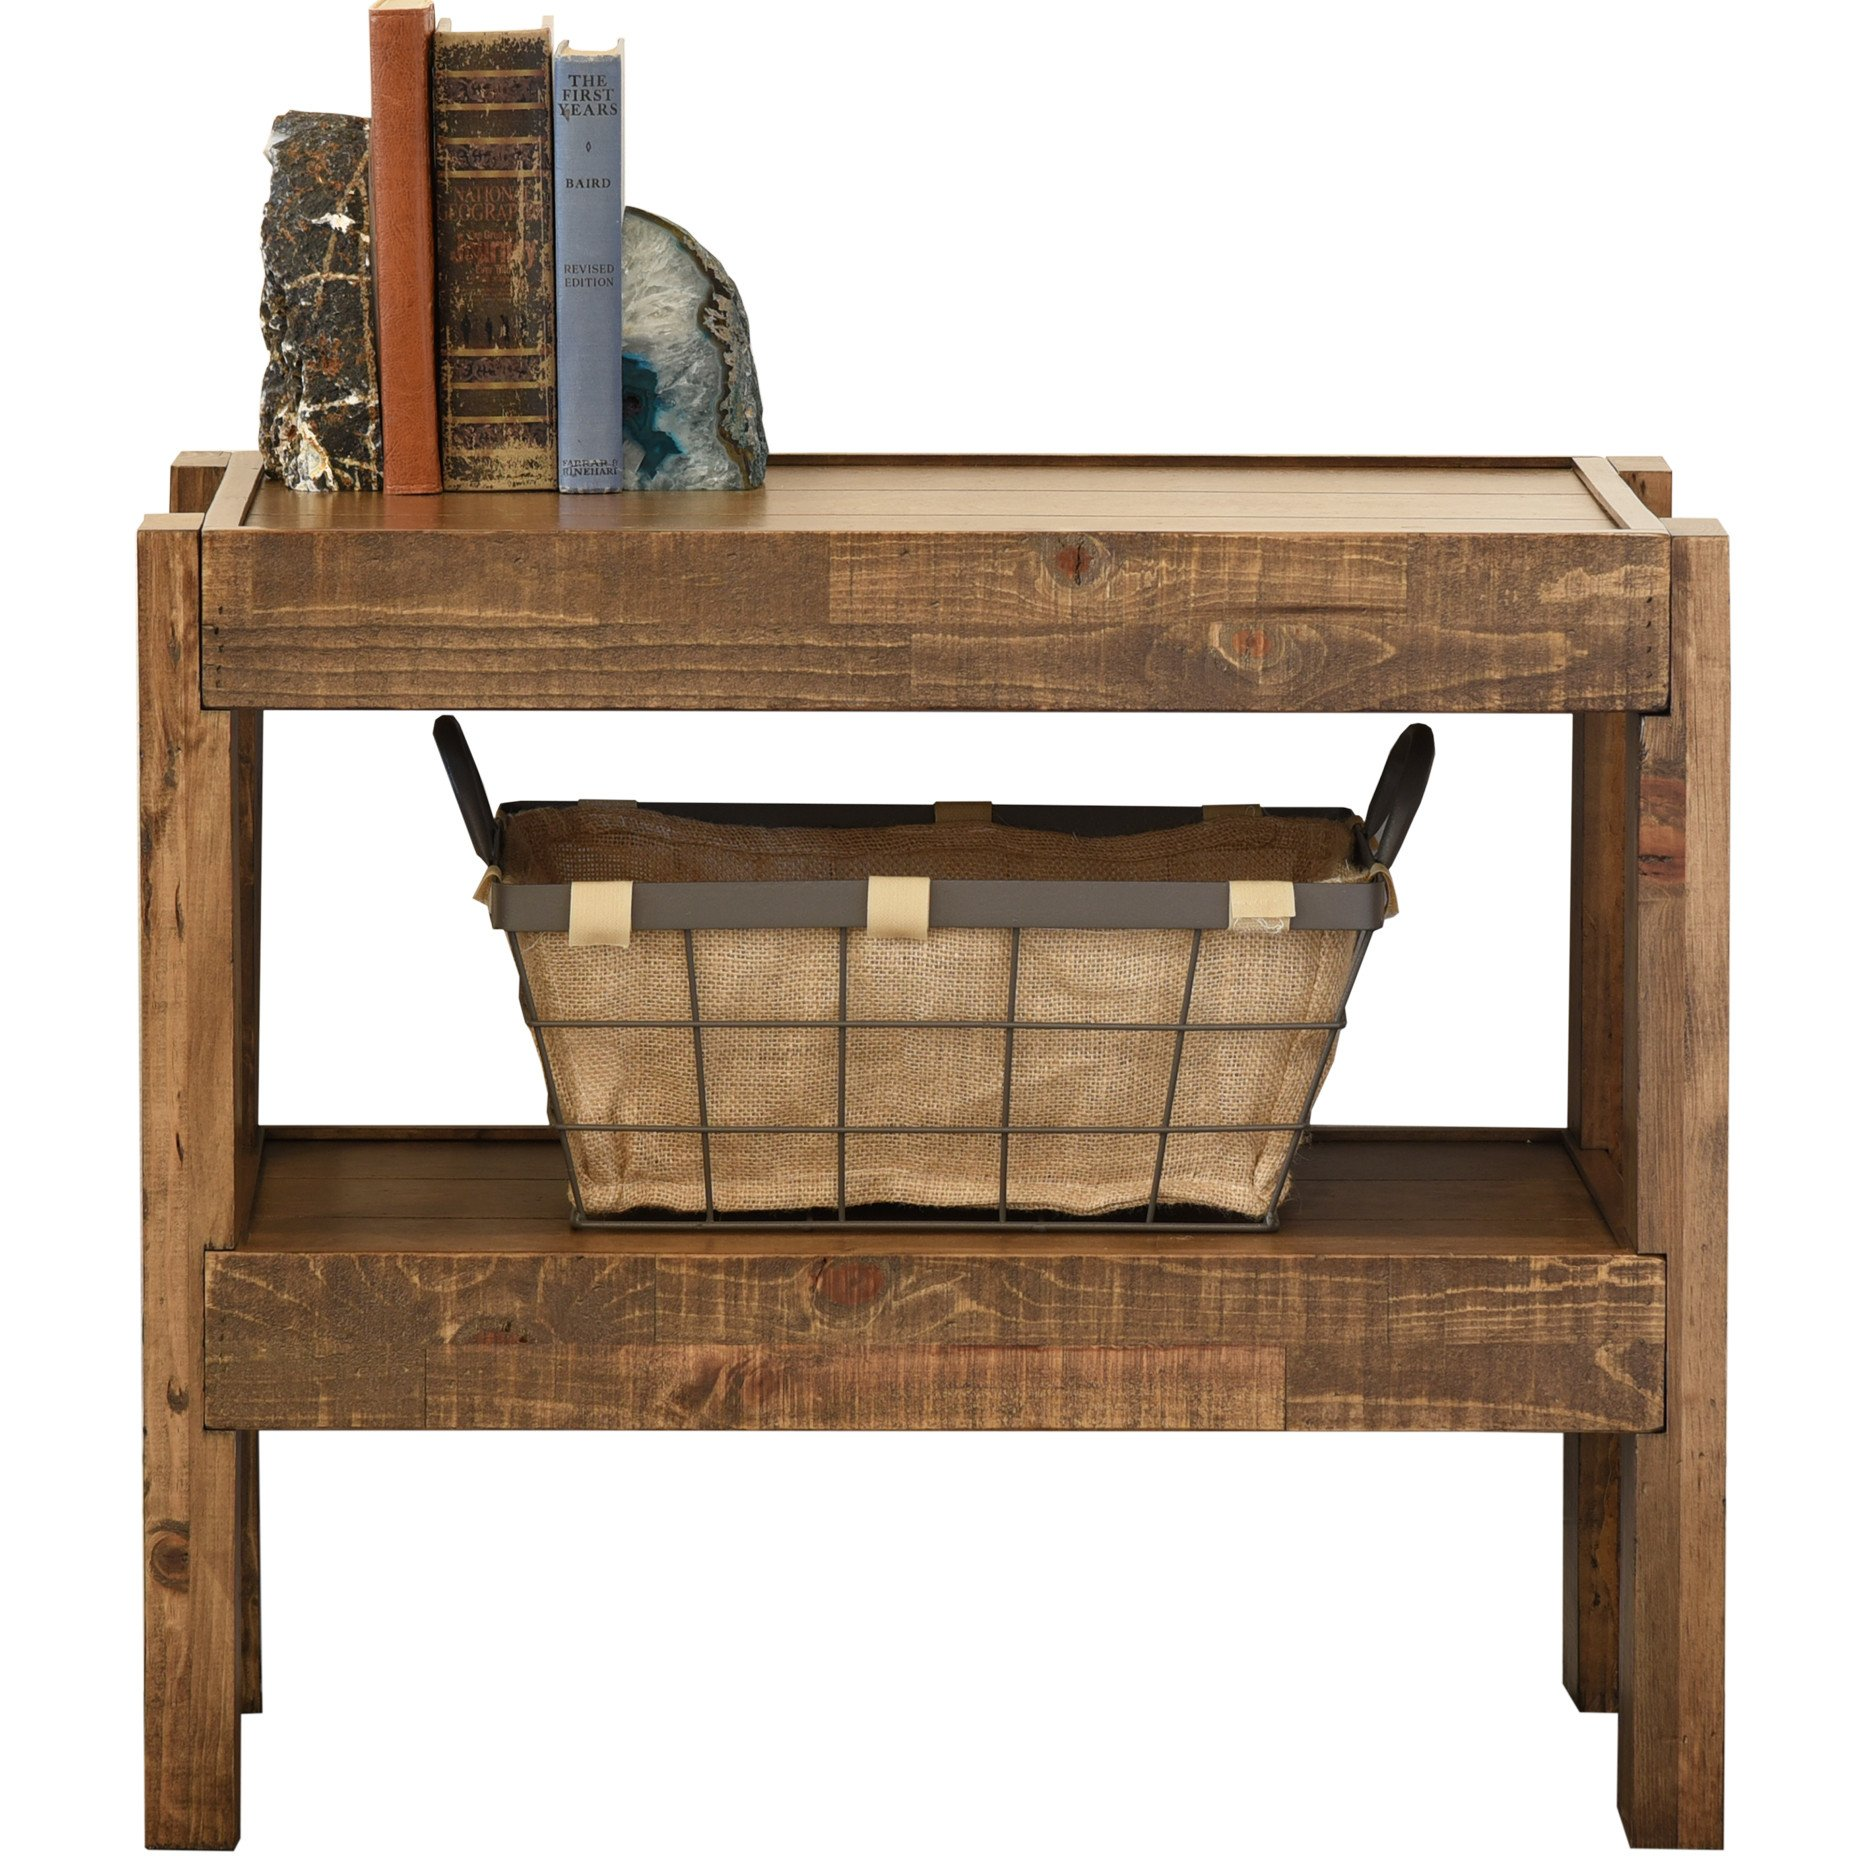 end tables woodwaves reclaimed whitenight stand rustic nautical nightstand presearth farmhouse accent table pallet wood style pottery barn pine lounge chairs inch trestle garden